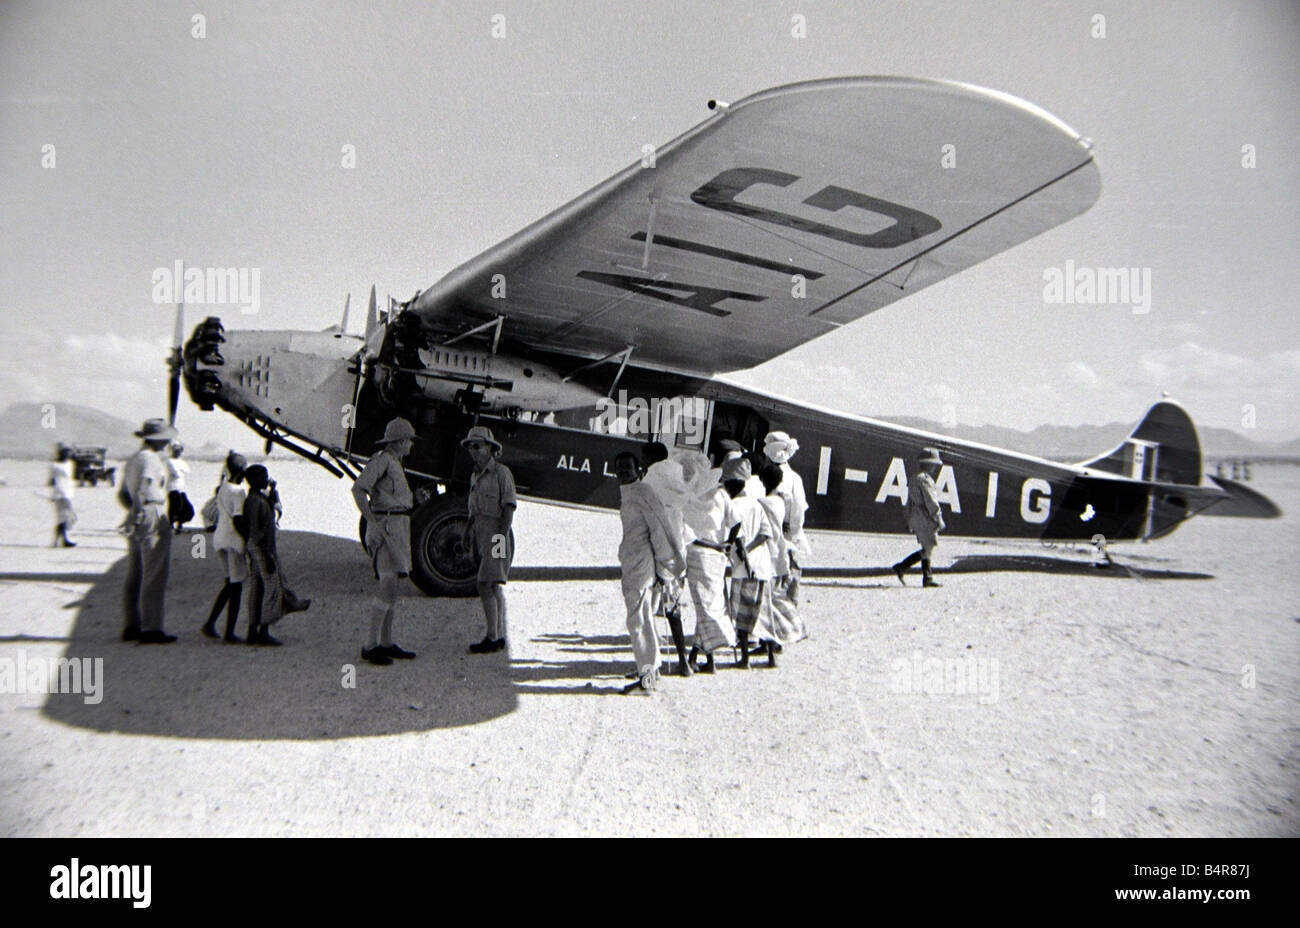 Plane in Somaliland Circa 1935 Colonialism - Stock Image